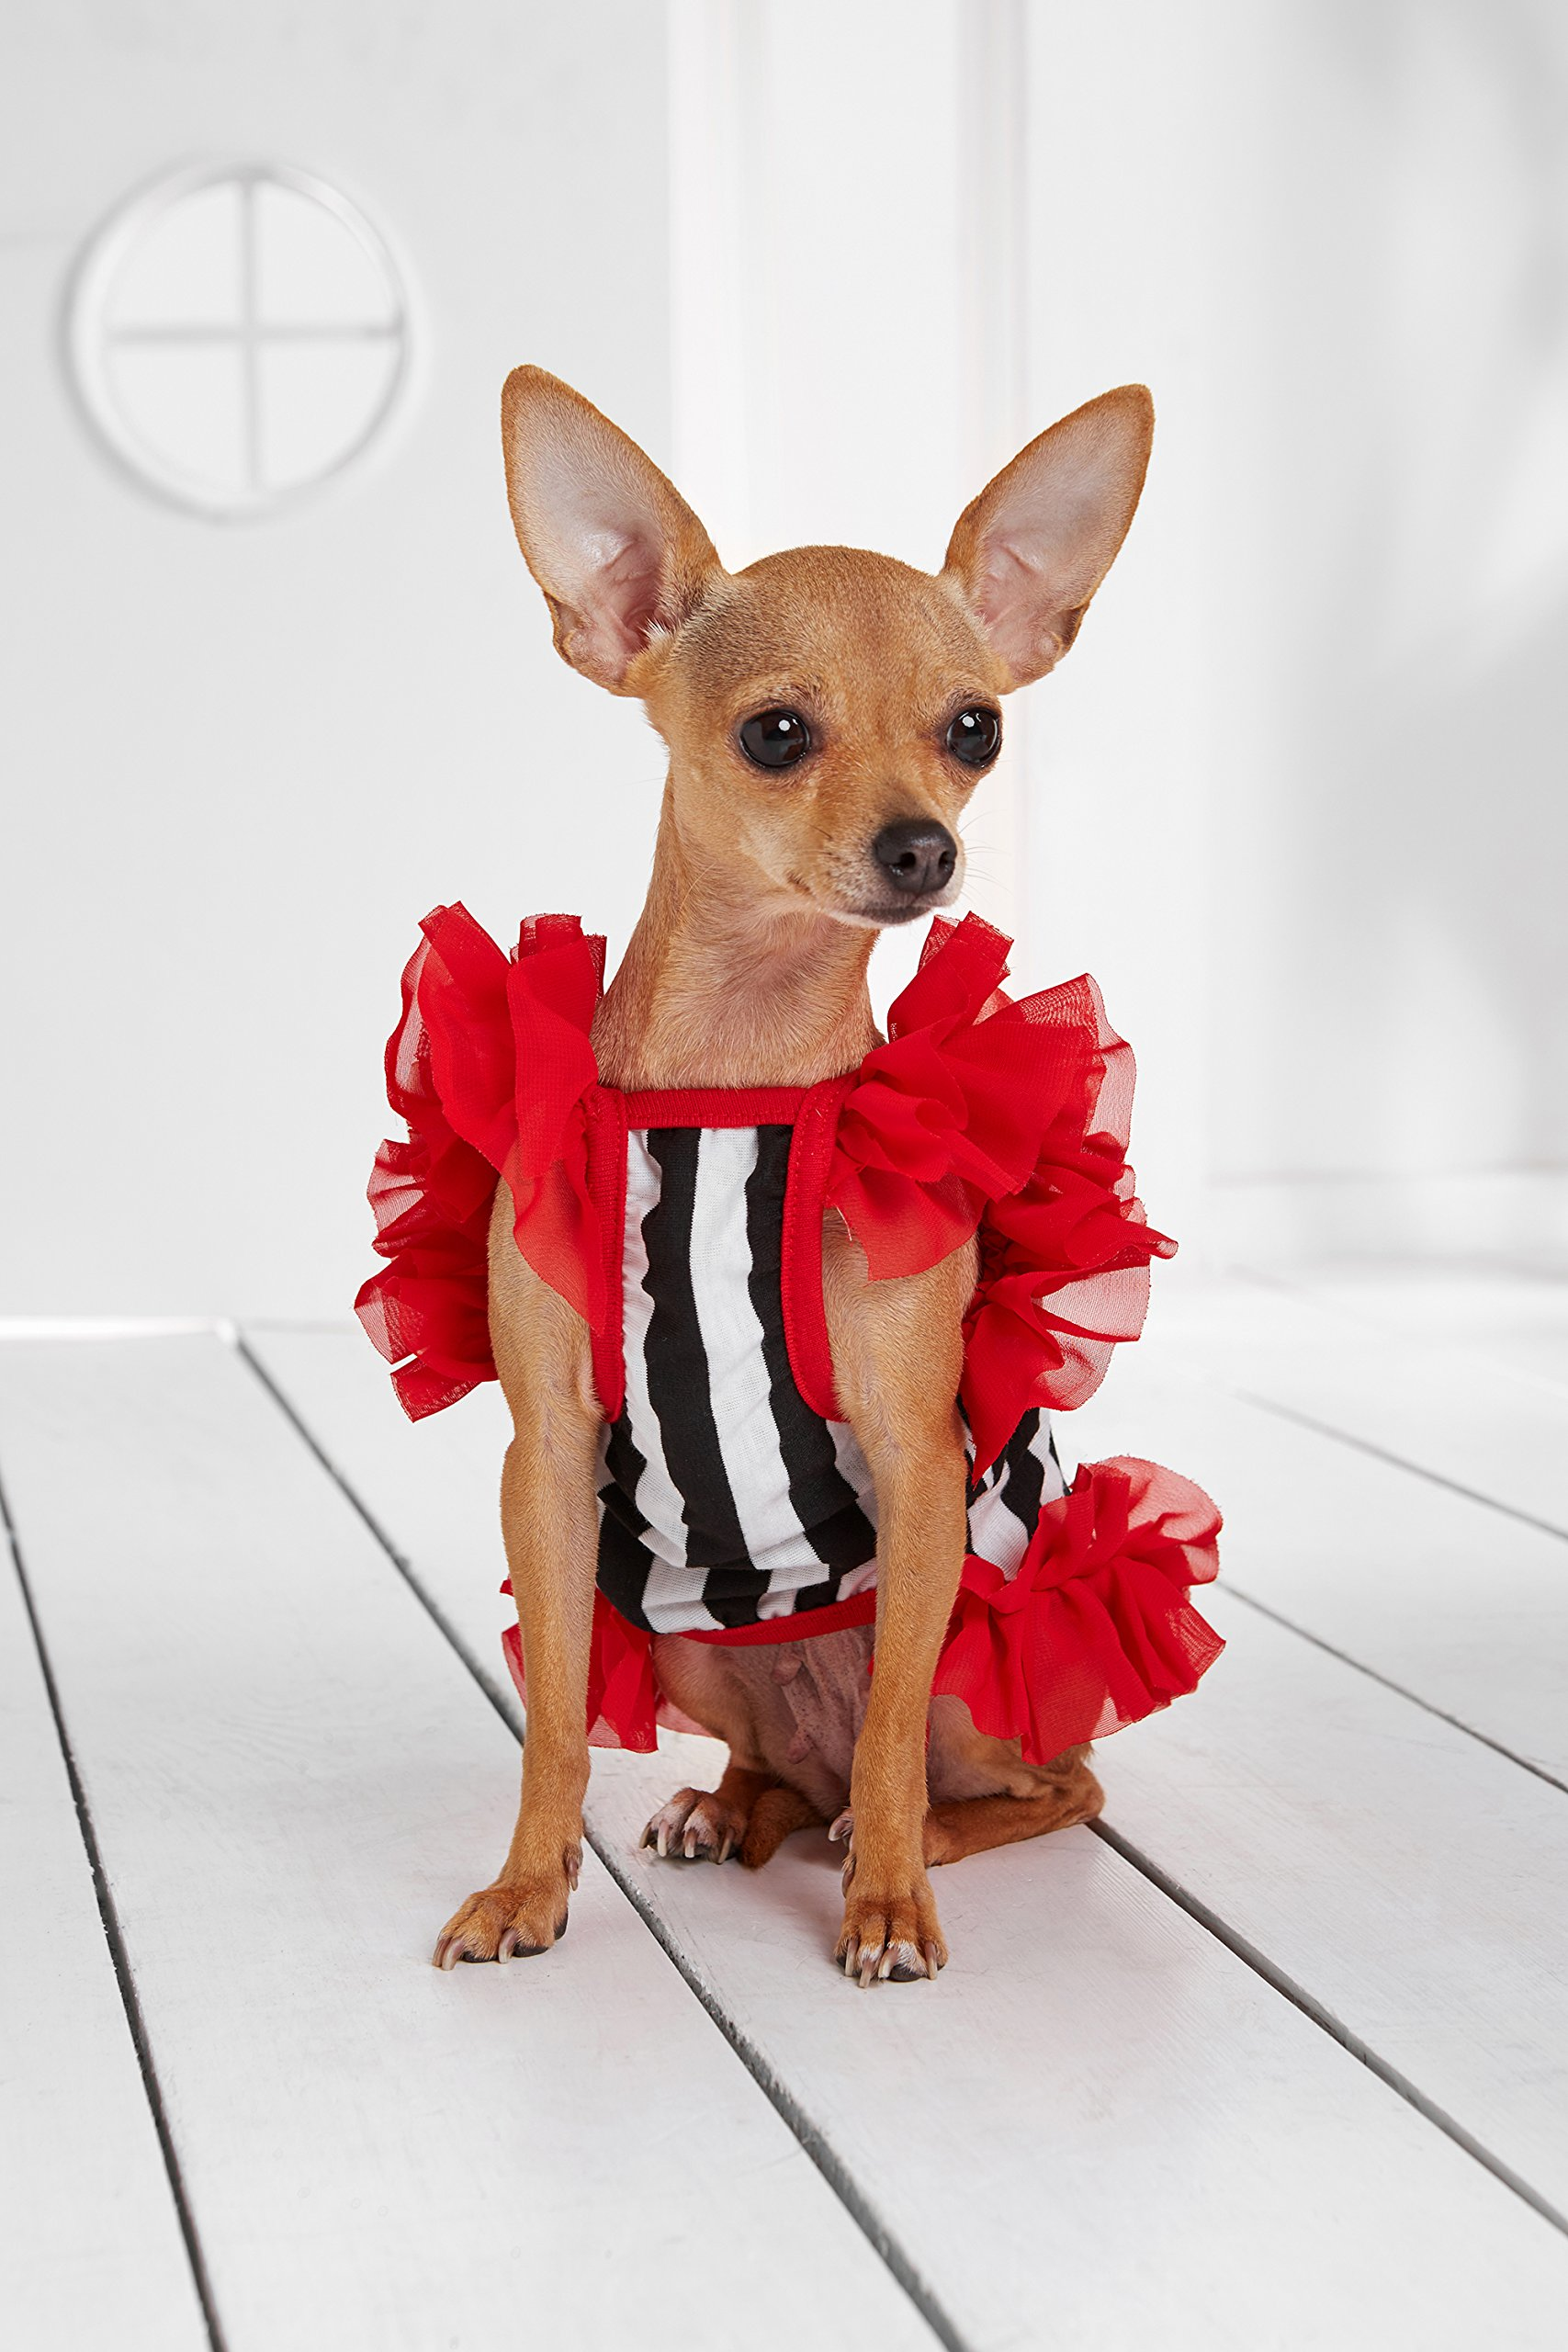 """Small Dog Striped Dress With Ruffles Satin Bow Chain Dogs Cotton Summer Clothes (Toy Plus: 10"""" / 5-9 lbs, Red, Black, White) by Nothing But Love Pets (Image #3)"""